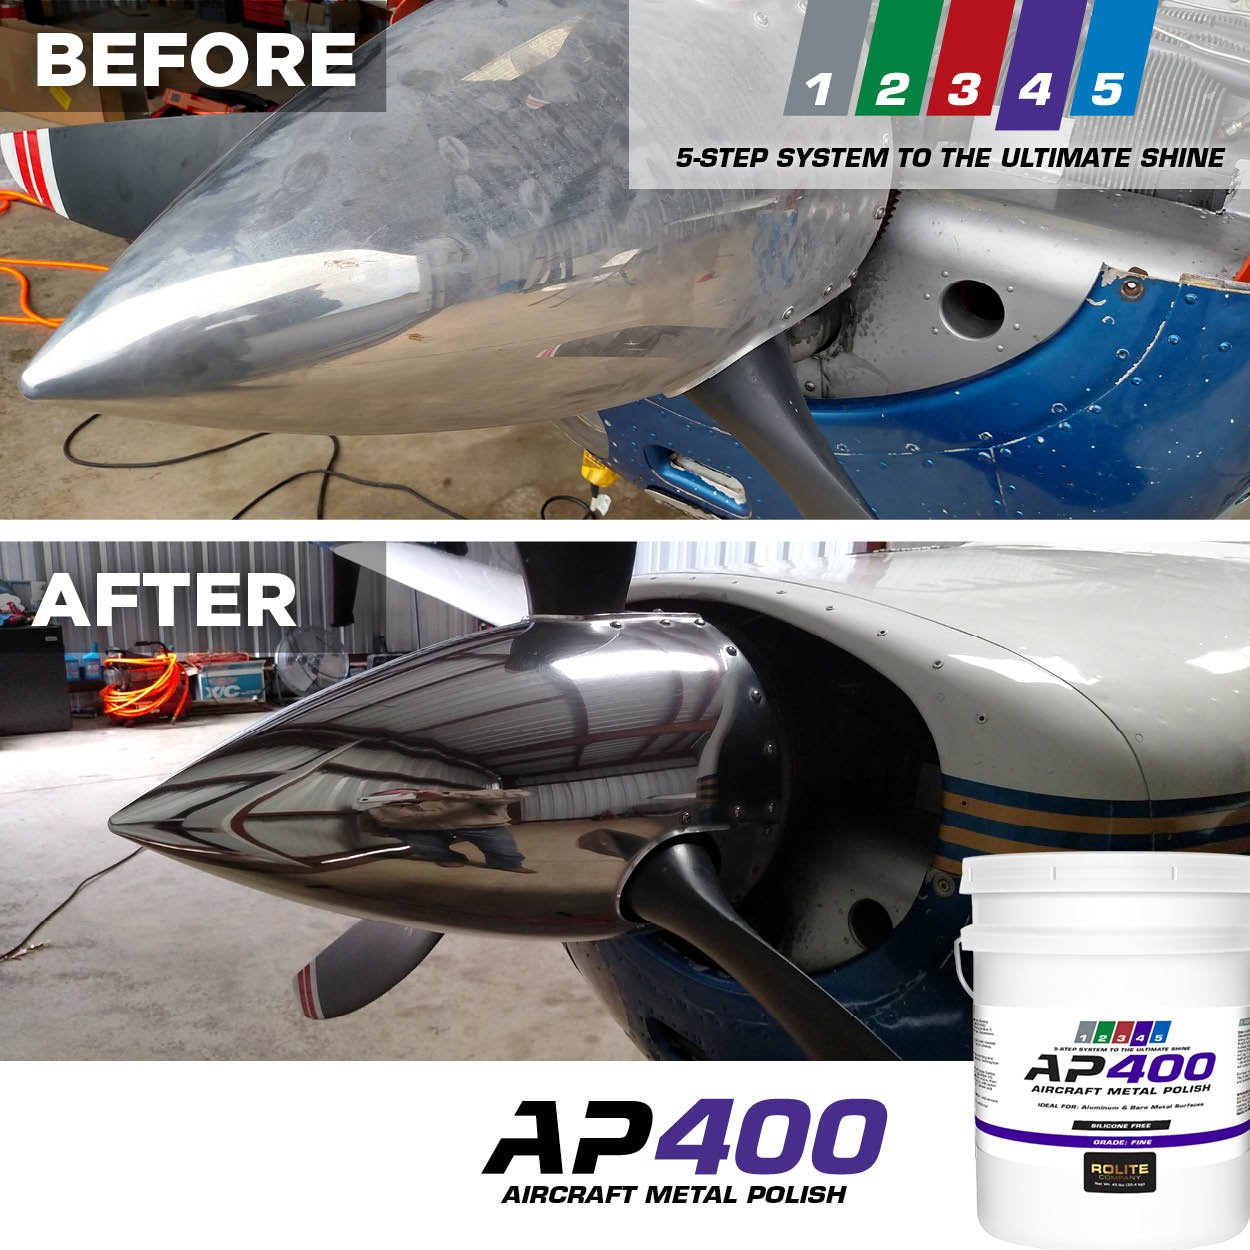 AP400 Aircraft Metal Polish (10lb) - Fine - for Airplane Aluminum & Bare Metal Surfaces, Brightwork, Meets Boeing & Airbus Requirements by Rolite (Image #5)